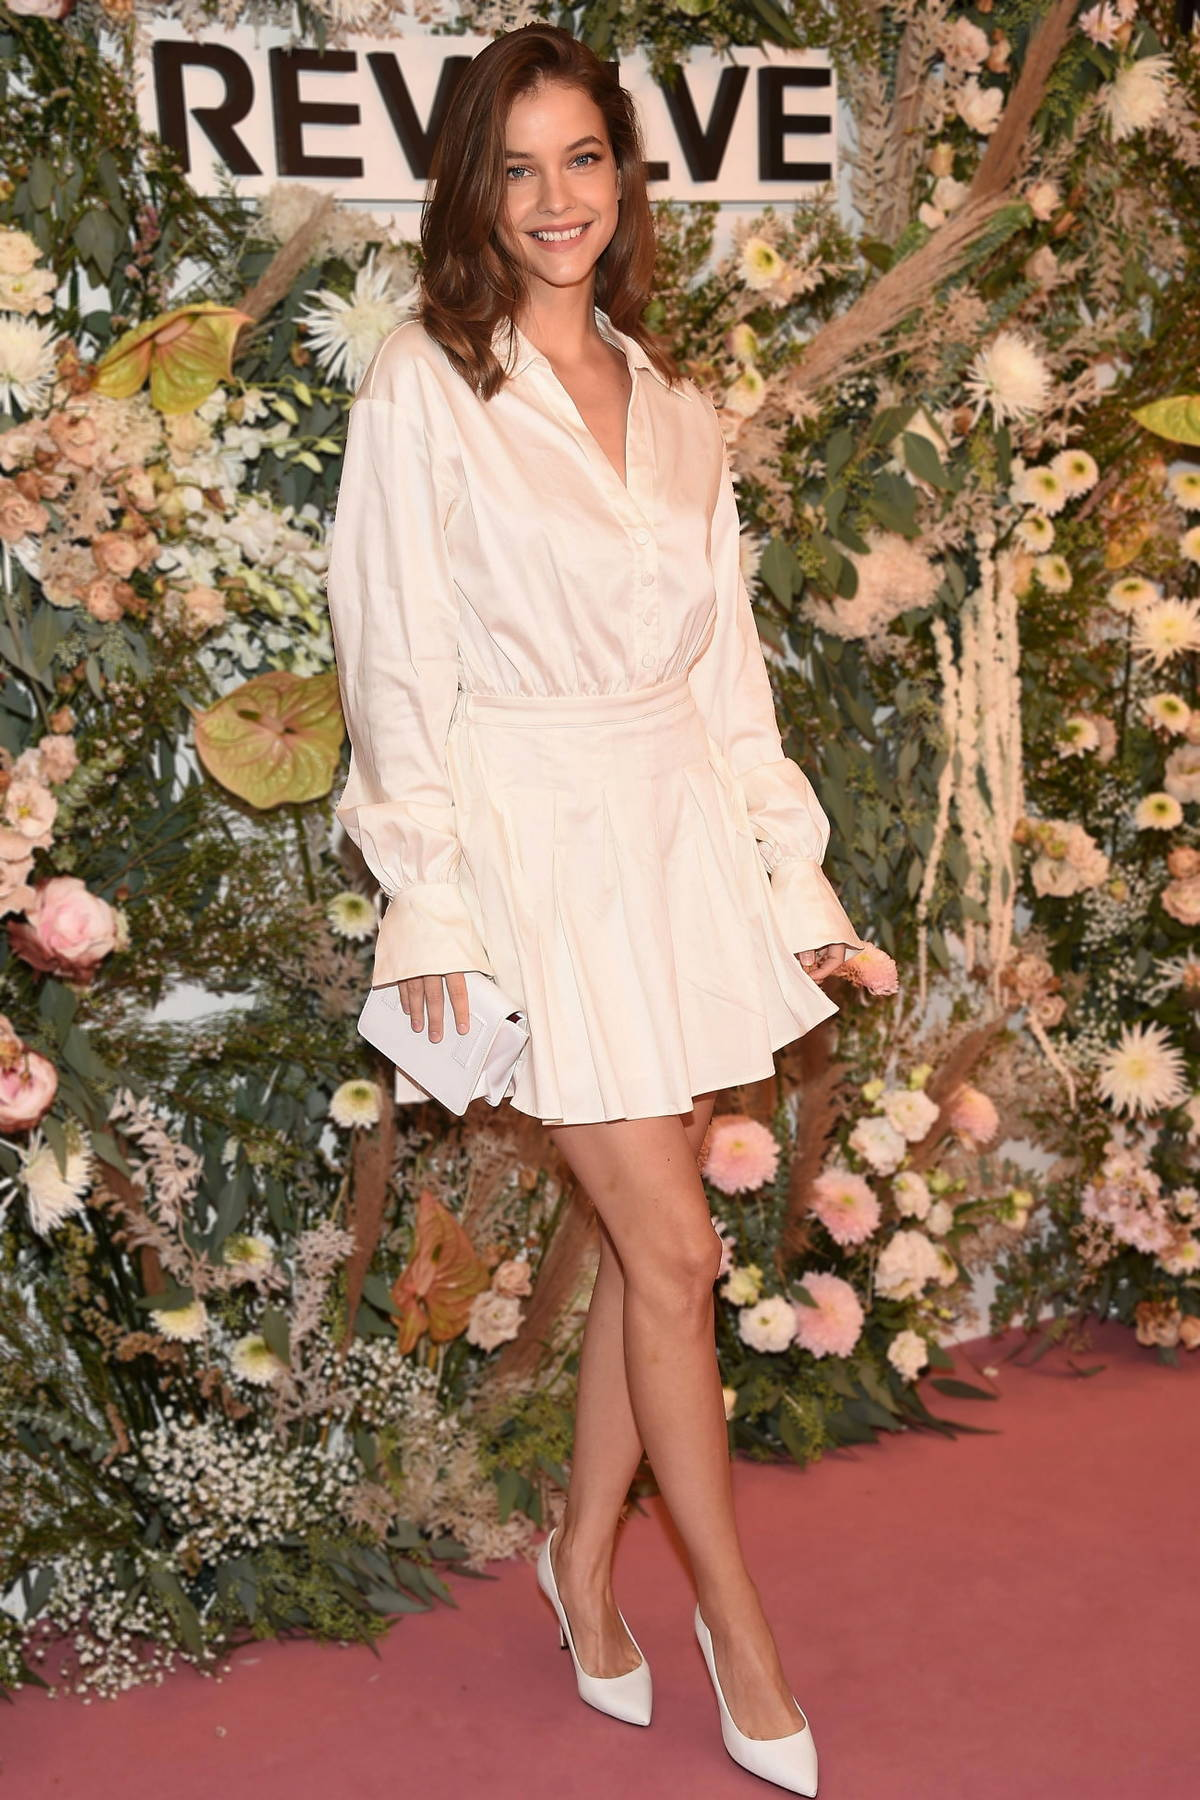 Barbara Palvin attends the Revolve Gallery inaugural event during New York Fashion Week at Hudson Yards in New York City